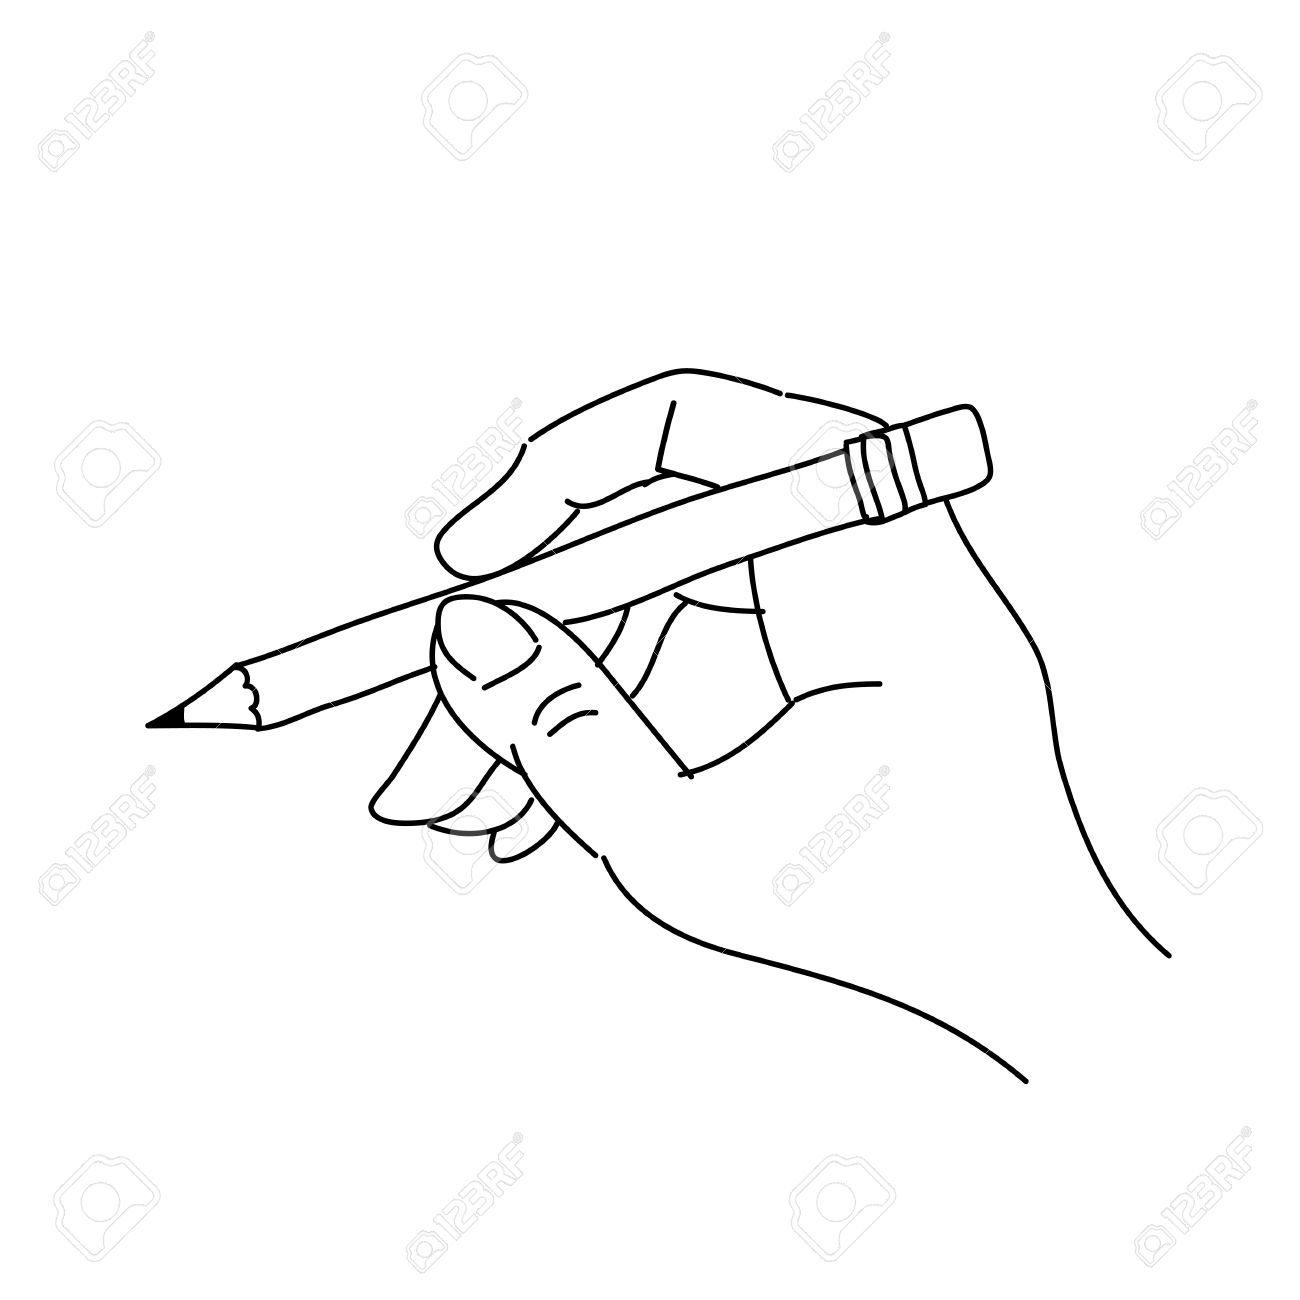 1300x1300 Drawings Of Hands Holding A Pencil Pencil Drawing Of Hand Holding